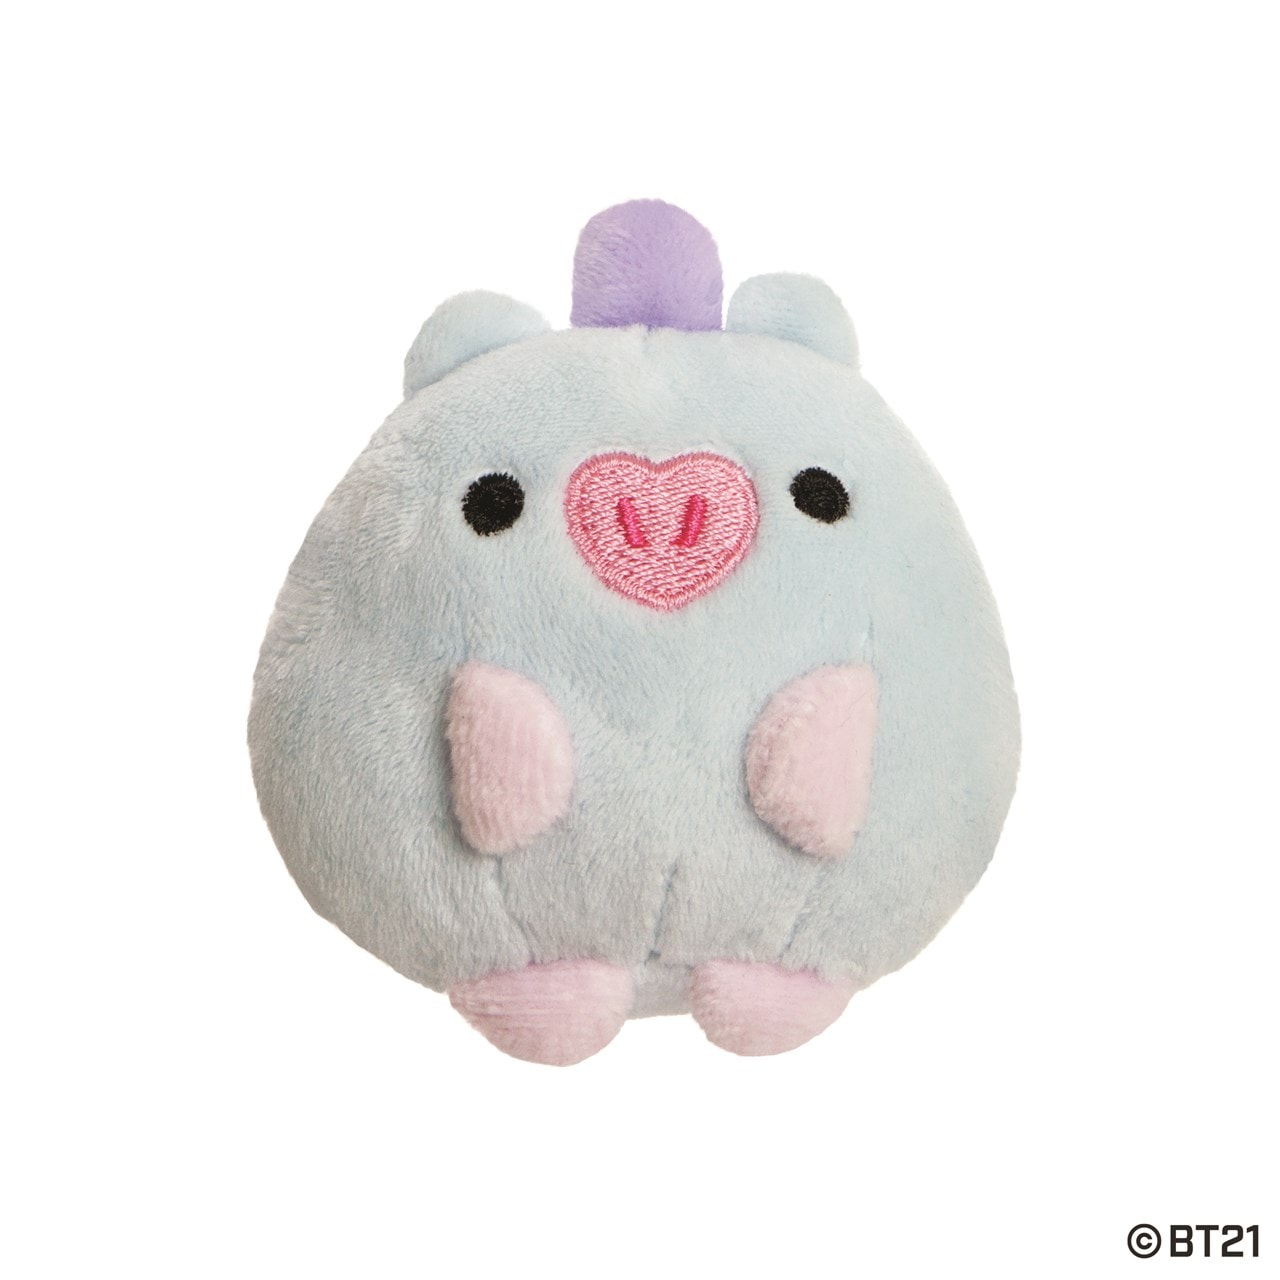 Mang Baby Pong Pong: BT21 Soft Toy - 1